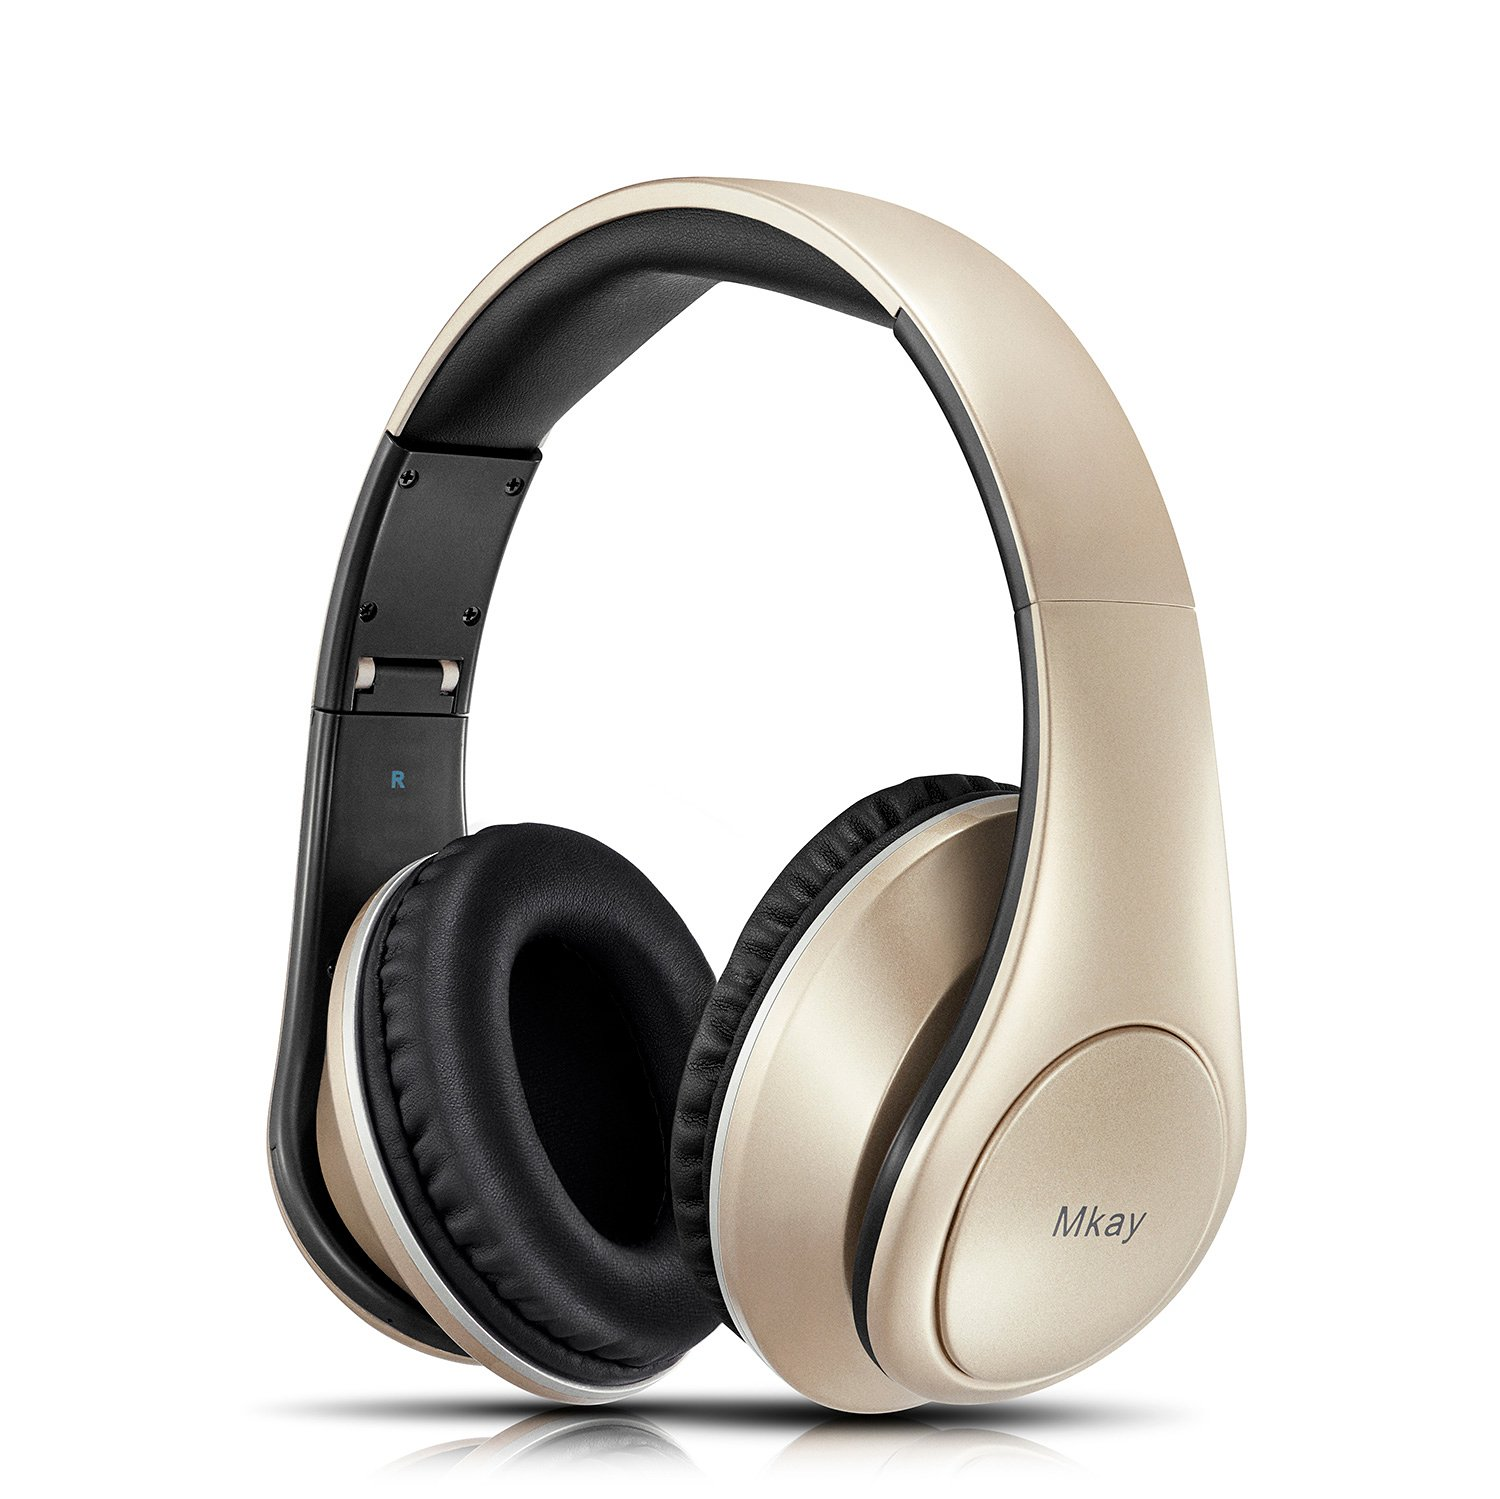 Bluetooth Headphones Over Ear, Mkay Wireless Stereo Headset V4.2 with Deep Bass, Foldable & Lightweight, Perfect for Cell Phone/TV/PC and Travelling (Rose Gold) Entery MKAY-HP-990-RG